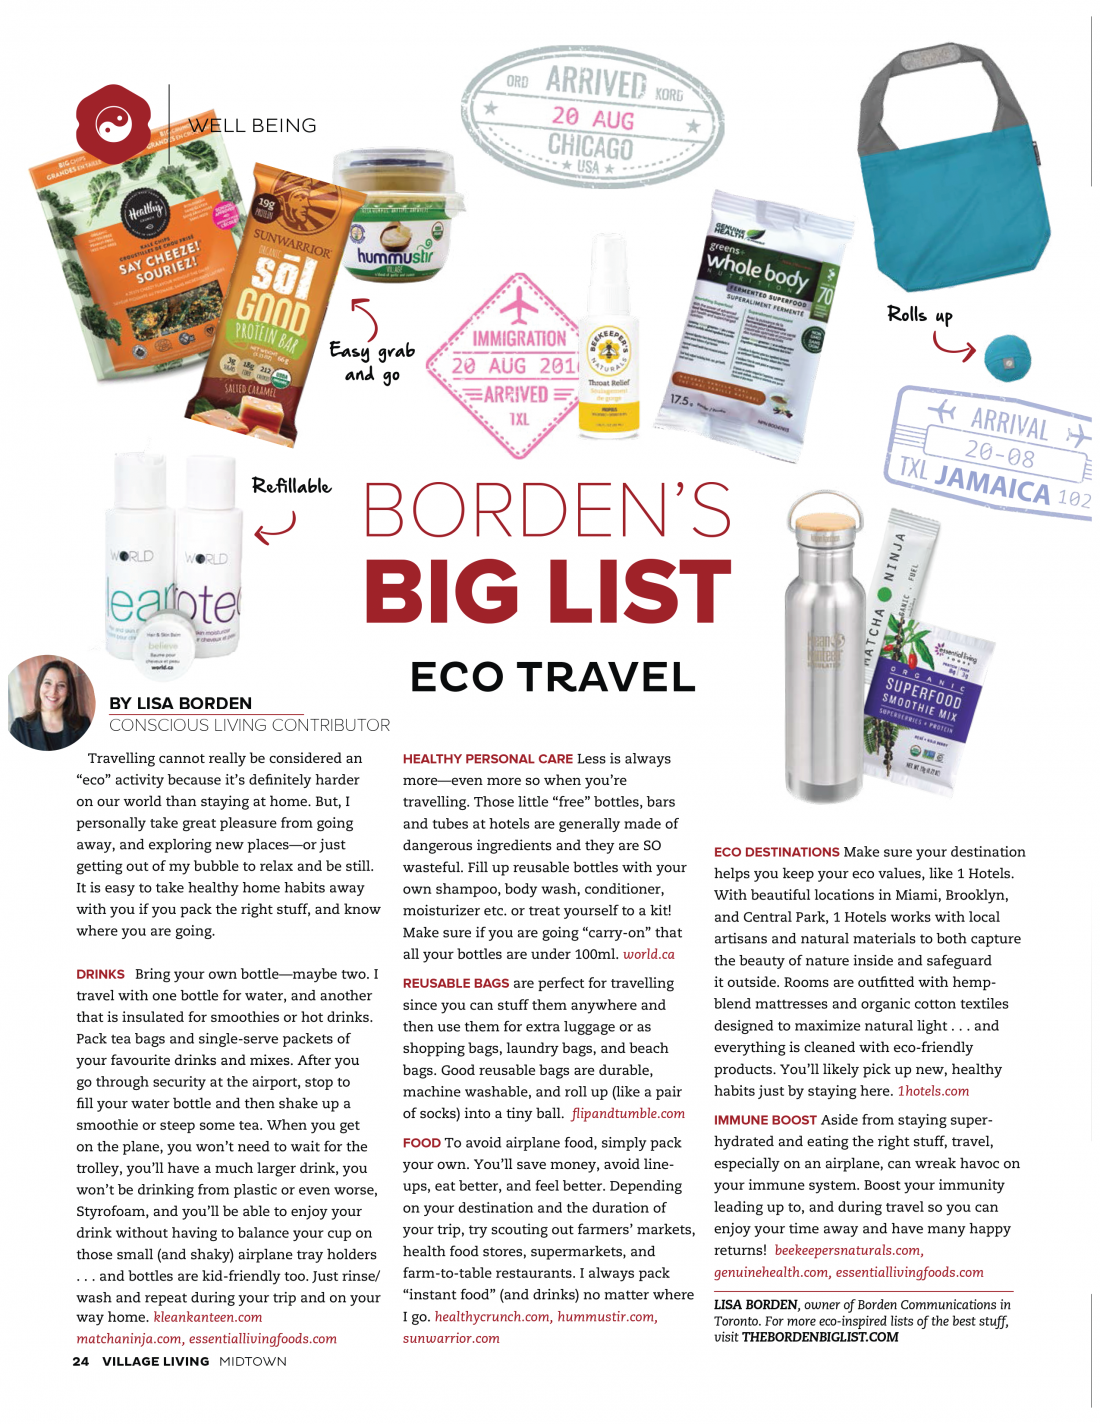 Eco Travel, Village Living Magazine